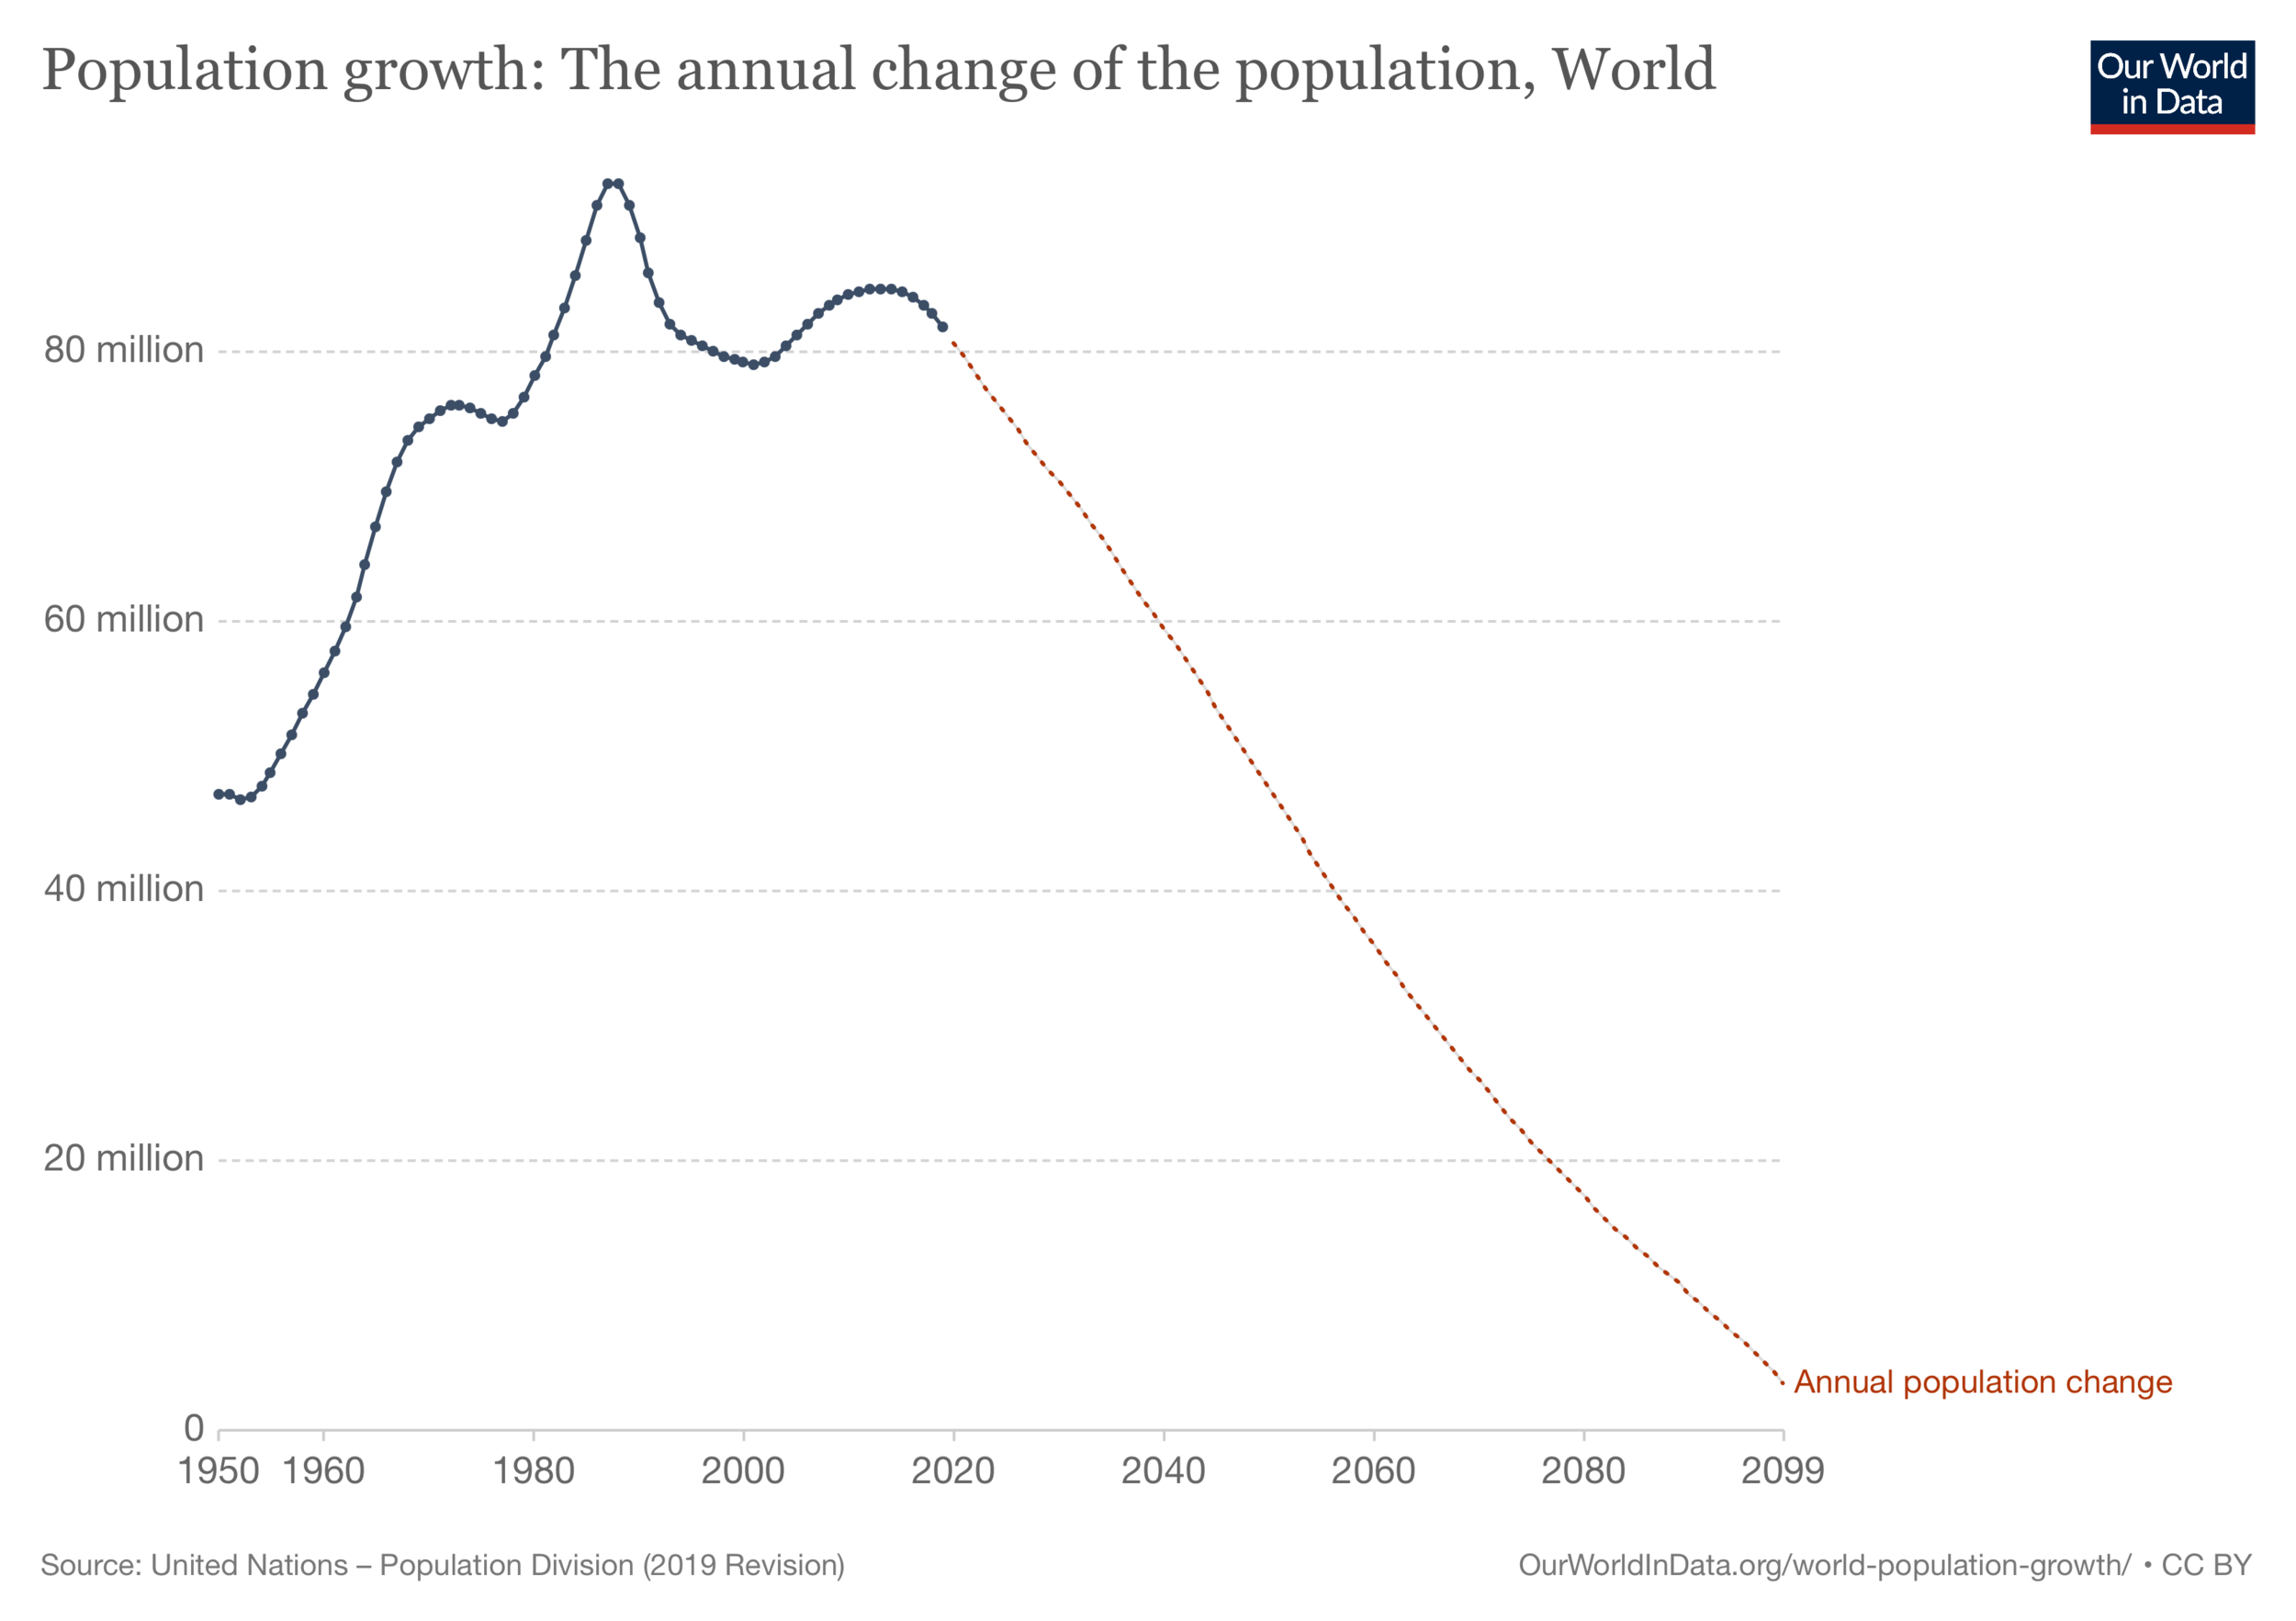 population-growth-the-annual-change-of-the-population.png